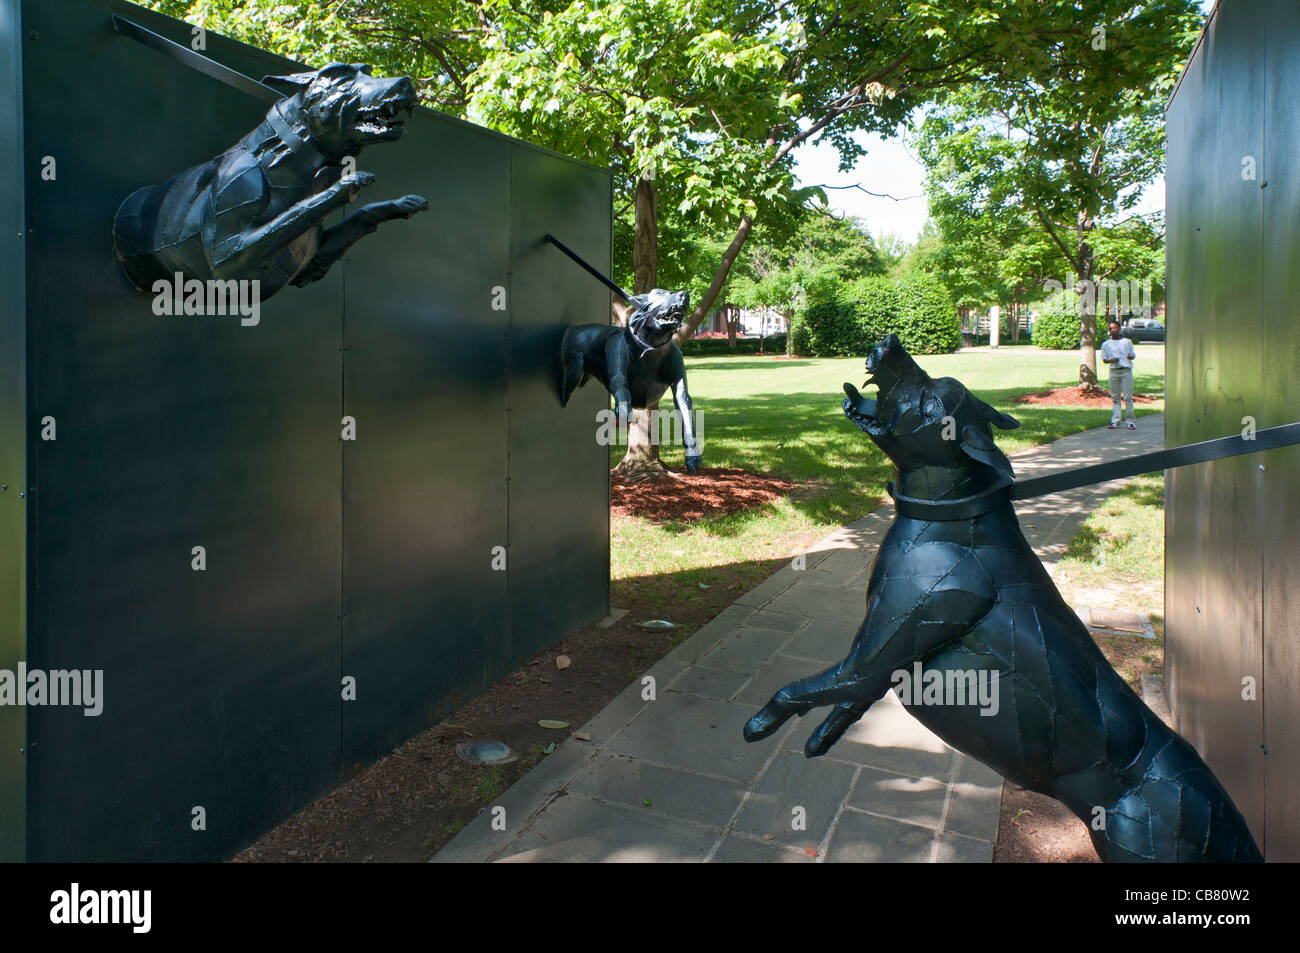 Alabama, Birmingham, Kelly Ingram Park, memorial statue to civil rights movement, police attack dogs - Stock Image